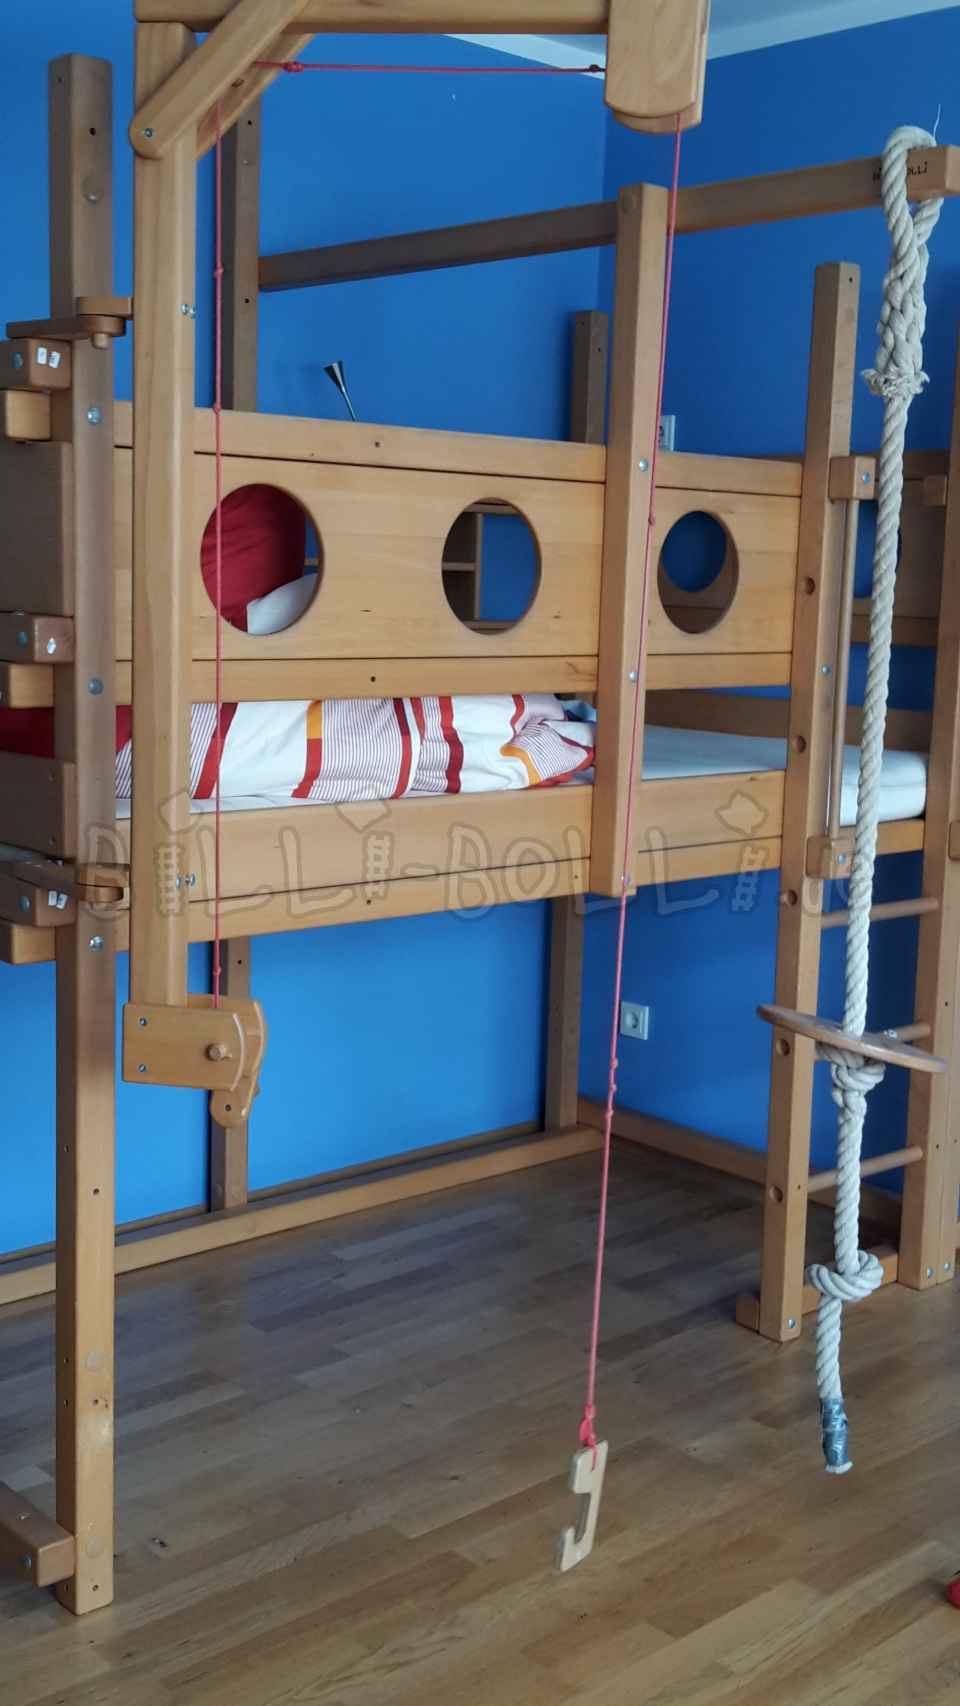 High bed 100 x 200 beech trees untreated (second hand loft bed)